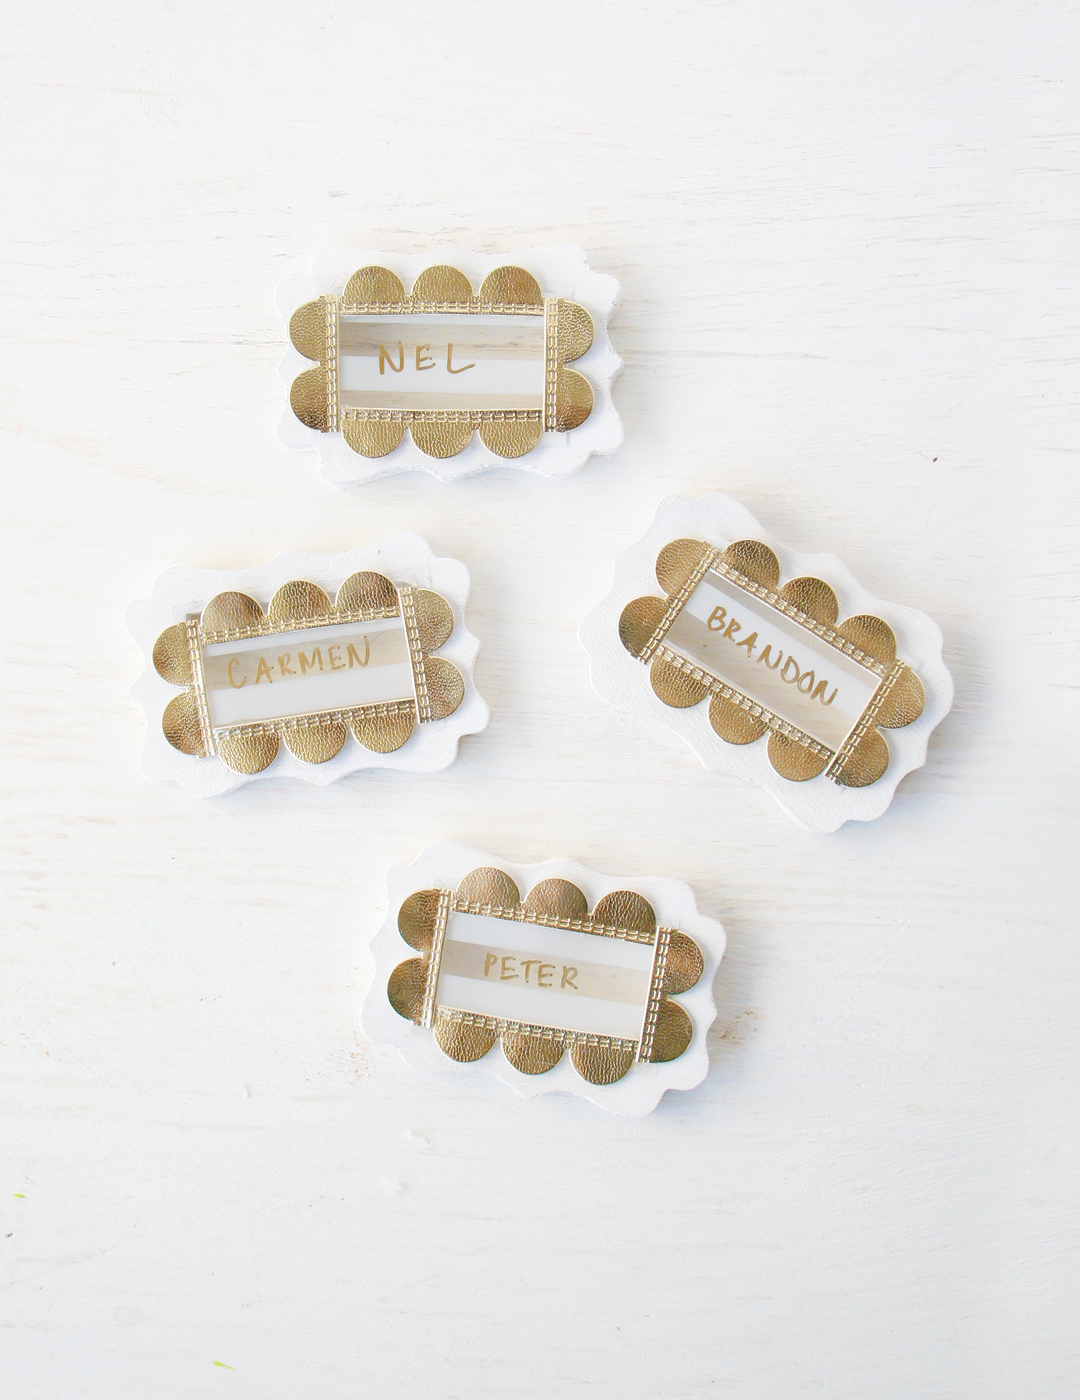 DIY Chic Name Cards